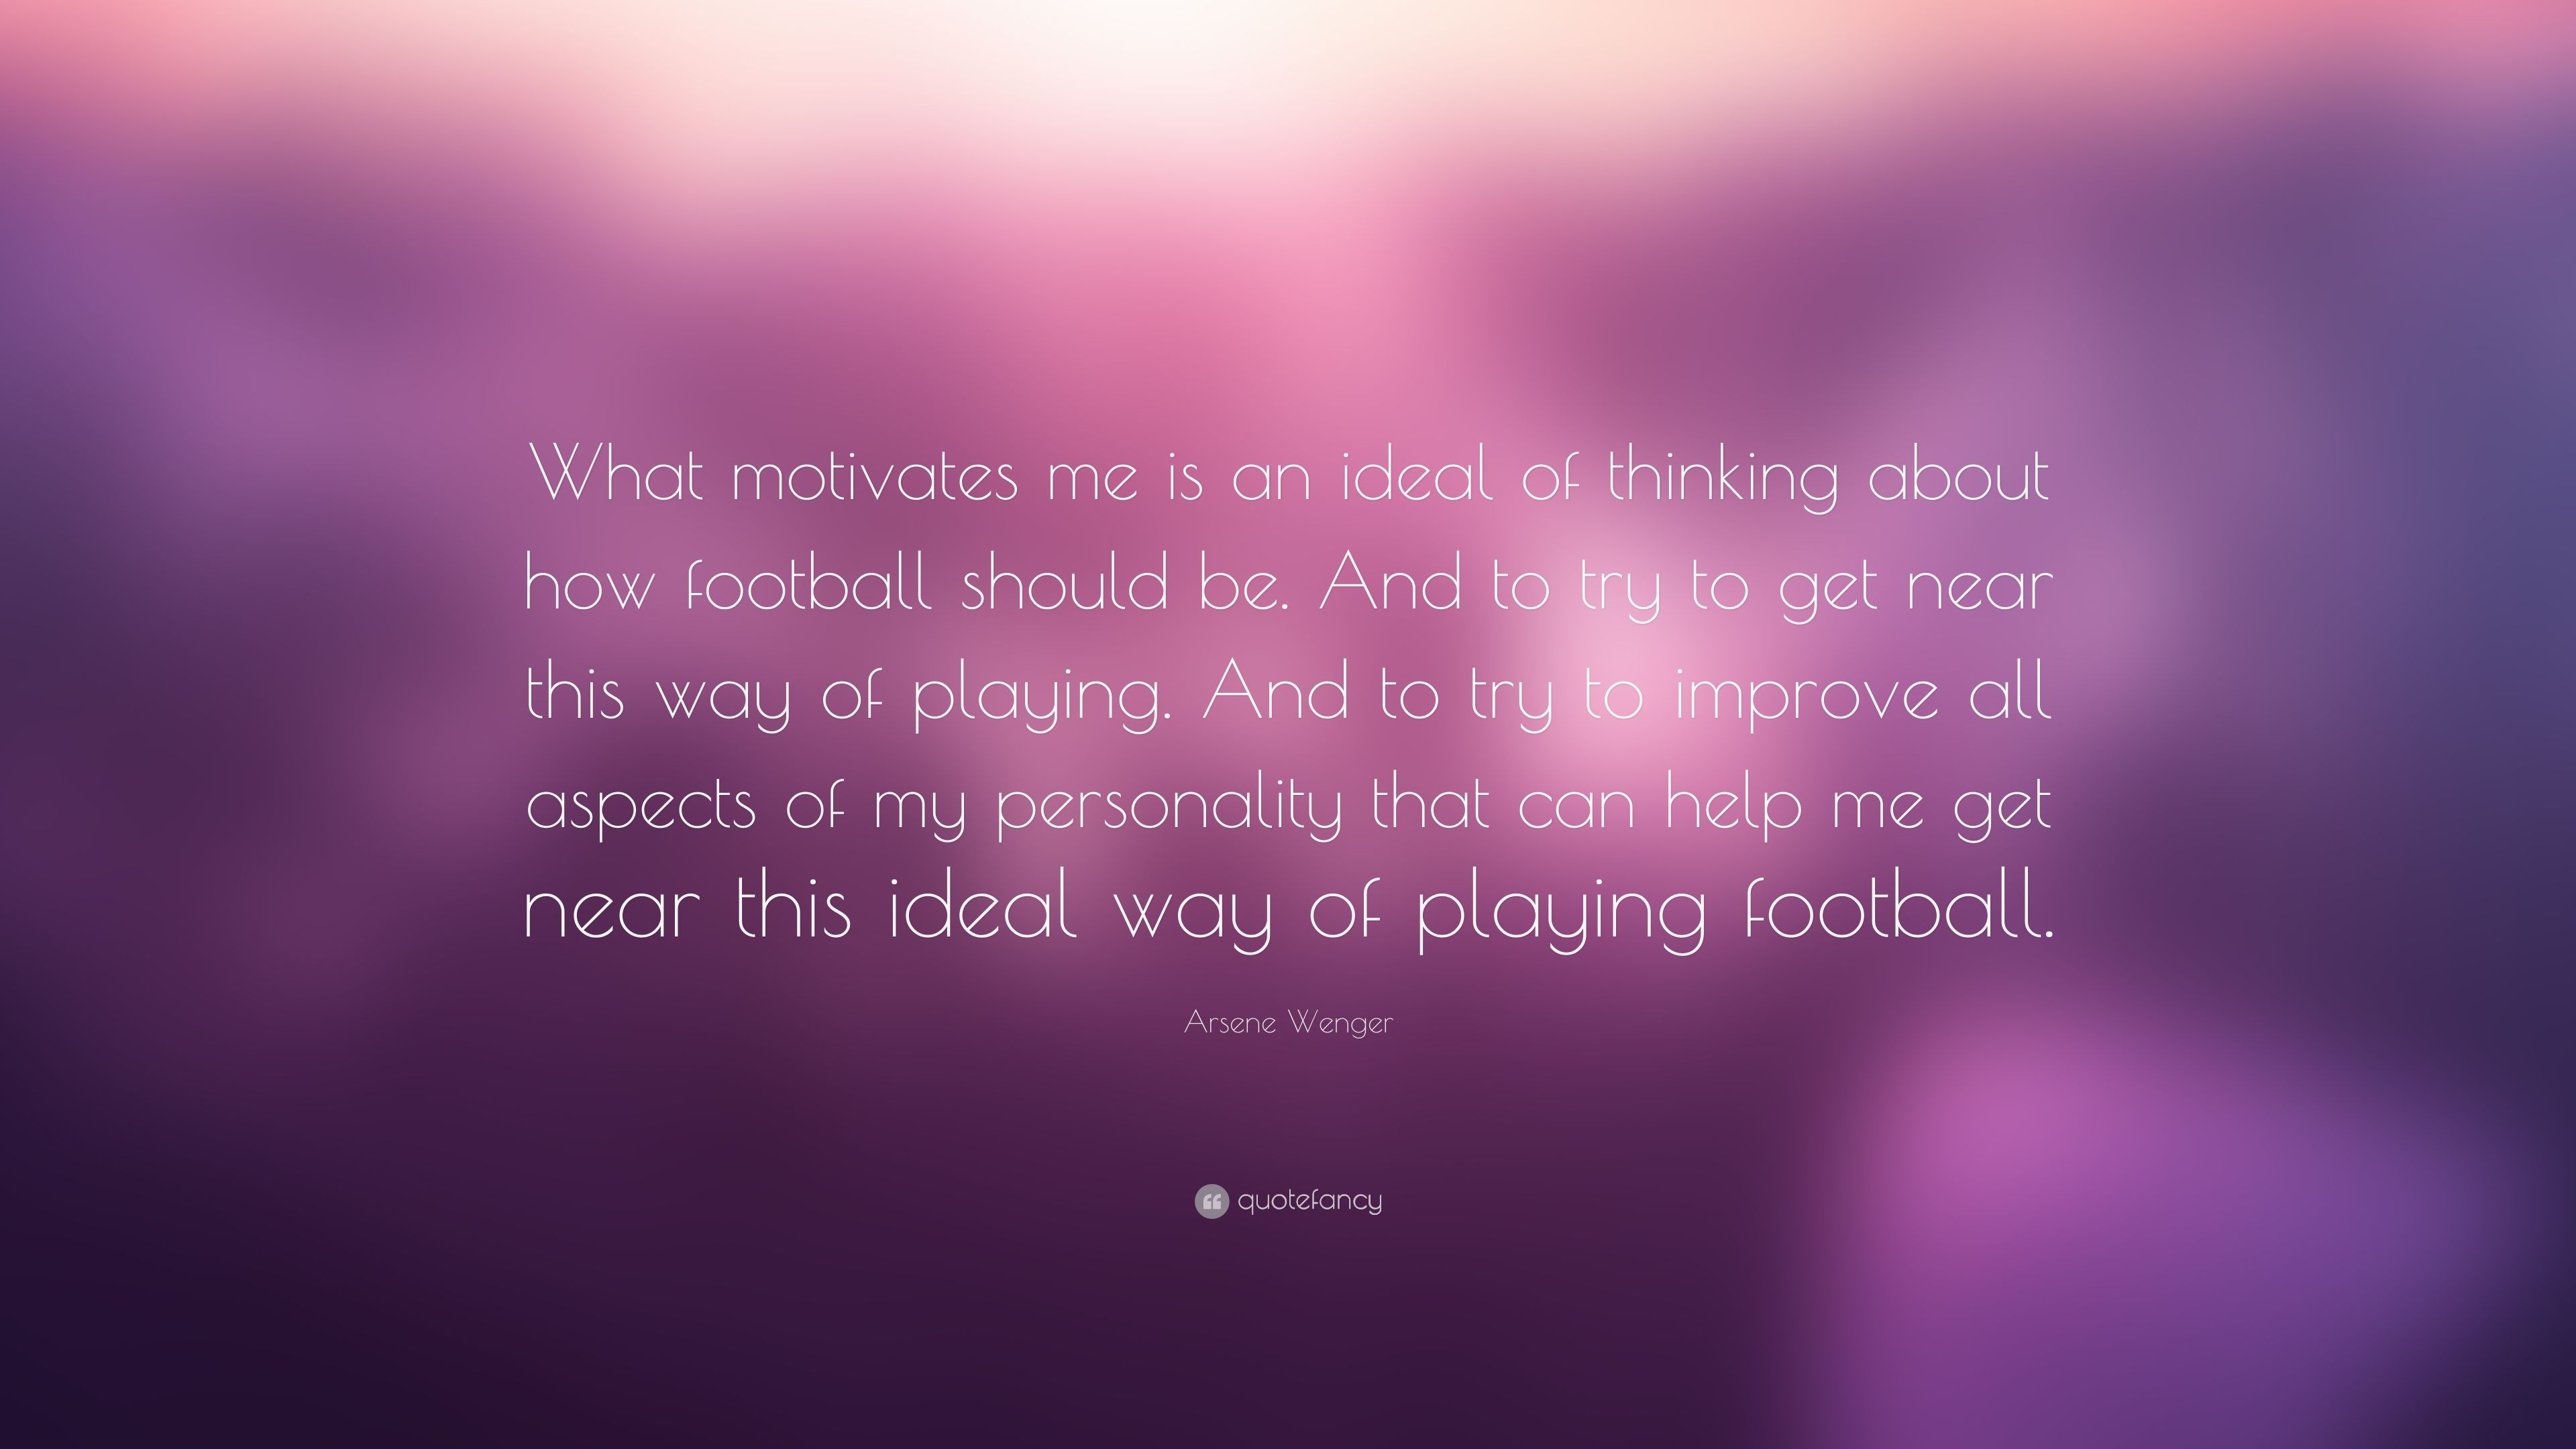 Arsene Wenger Quote What Motivates Me Is An Ideal Of Thinking About How Football Should Be And To Try To Get Near This Way Of Playing And 7 Wallpapers Quotefancy Ideal image provides treatments ranging from laser hair removal to botox & fillers, skin removal and so on. quotefancy